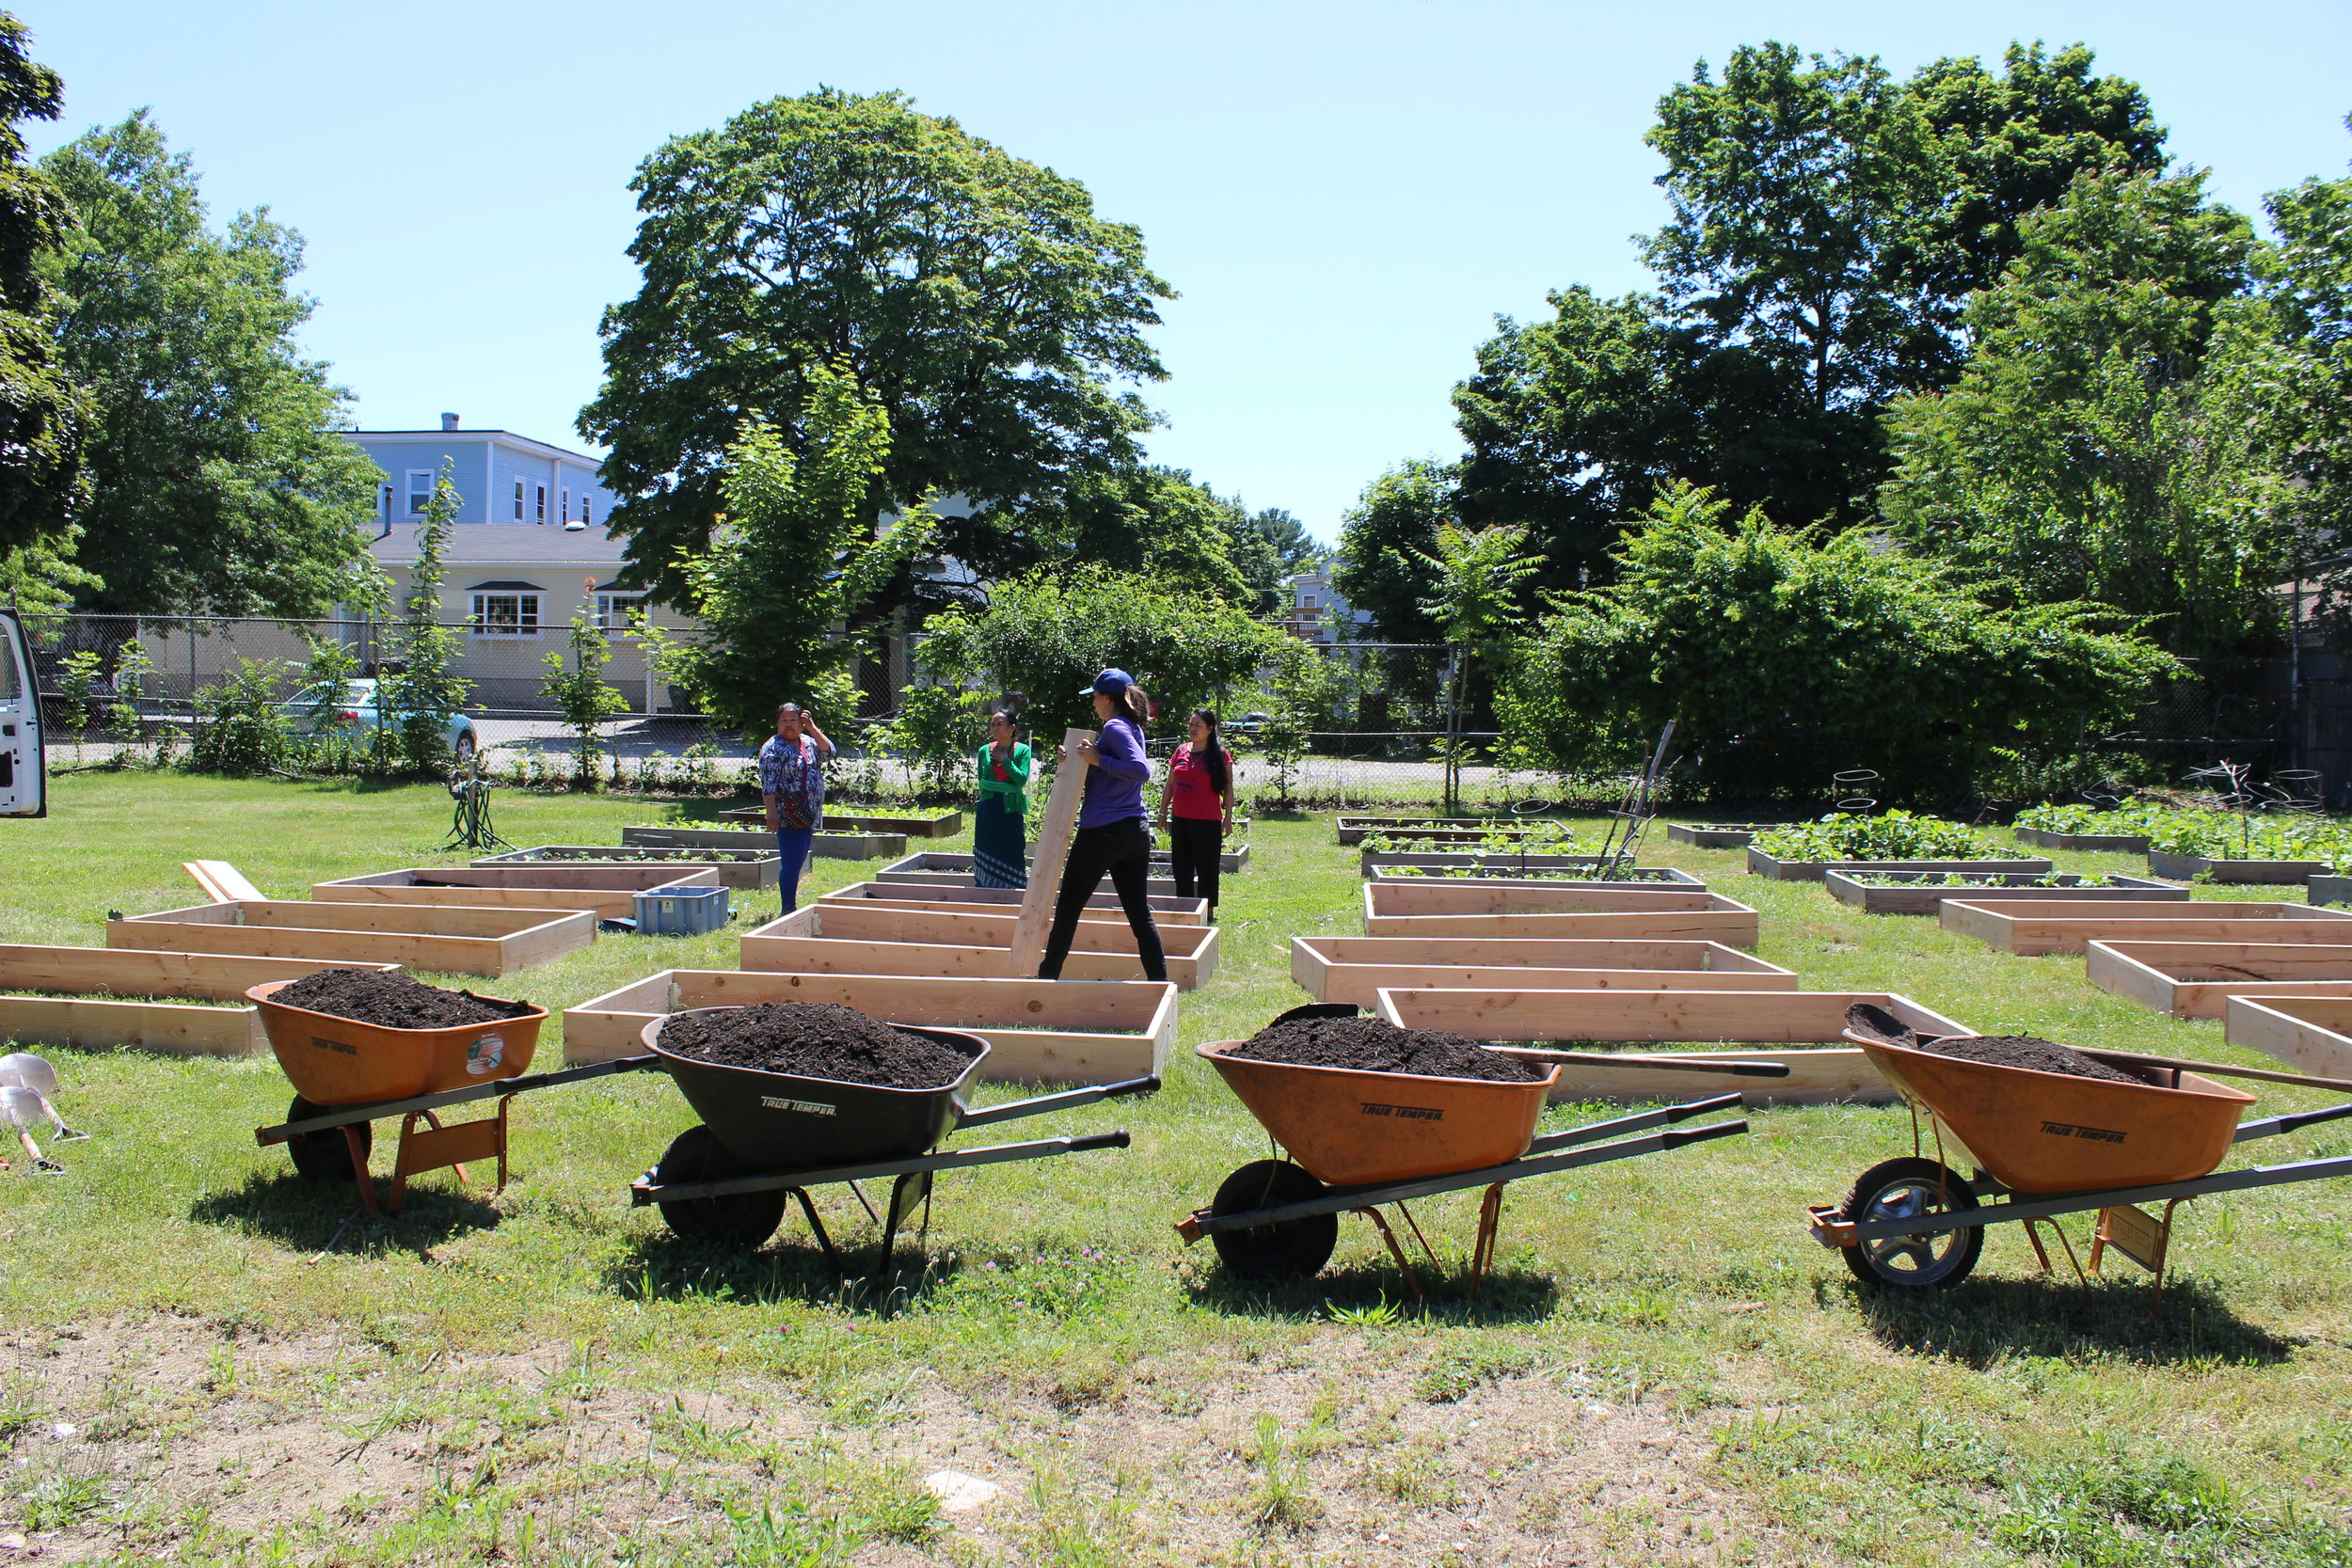 Constructing garden plots at Ames Community Garden